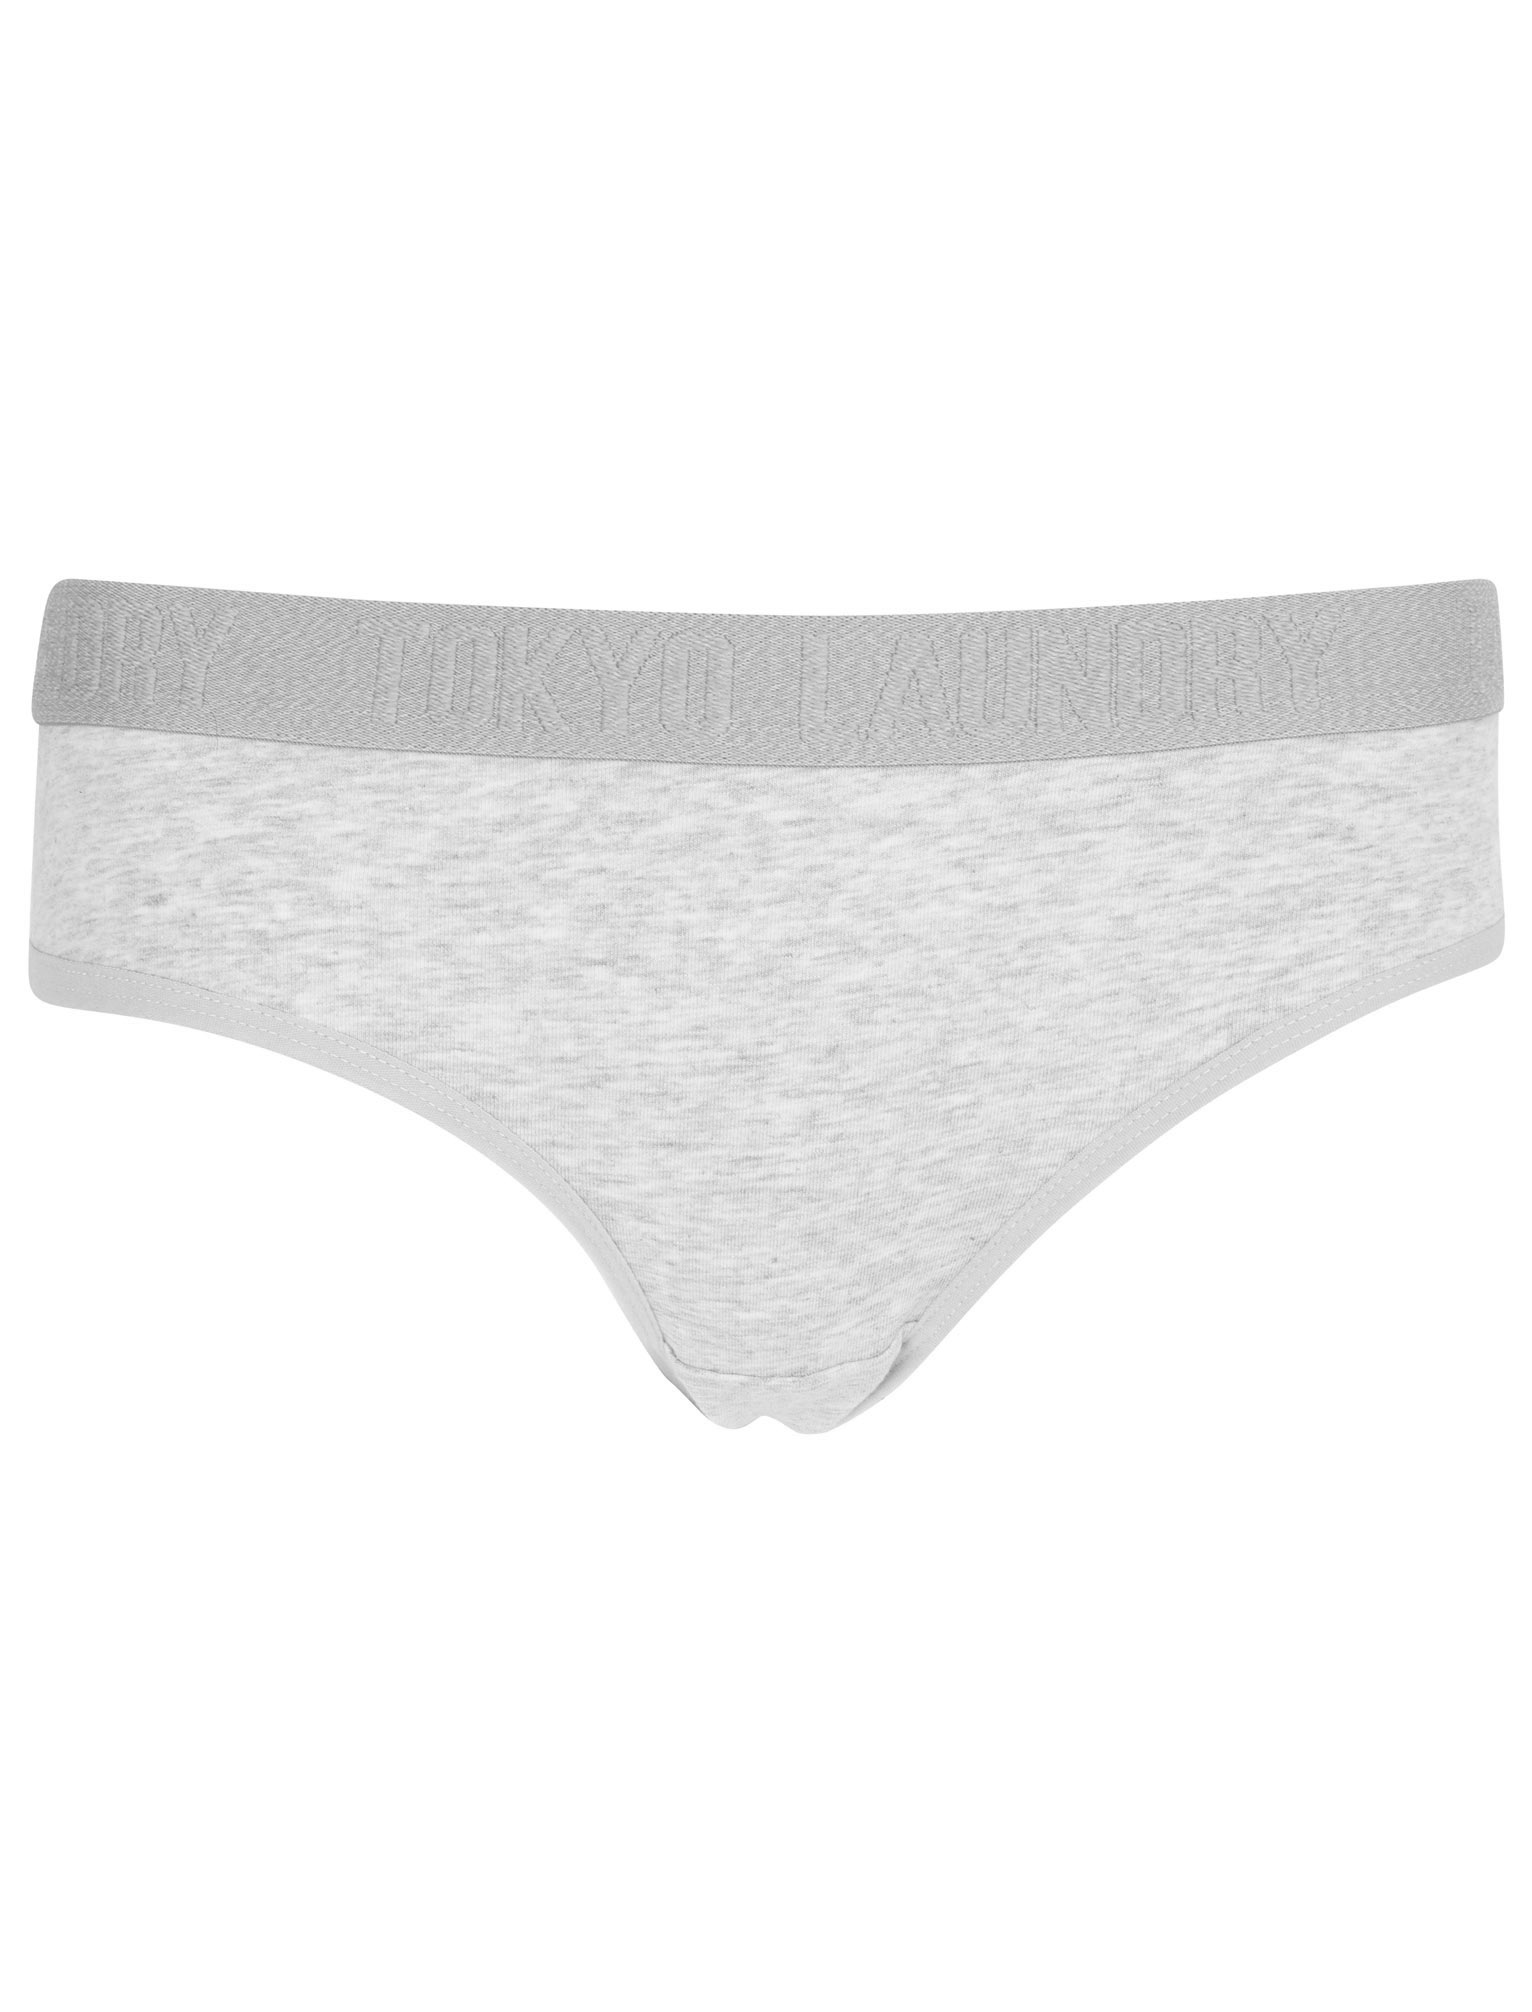 Tokyo-Laundry-Women-039-s-5-Pack-Briefs-Knickers-Underwear-Boxers-Elasticated-Waist thumbnail 9